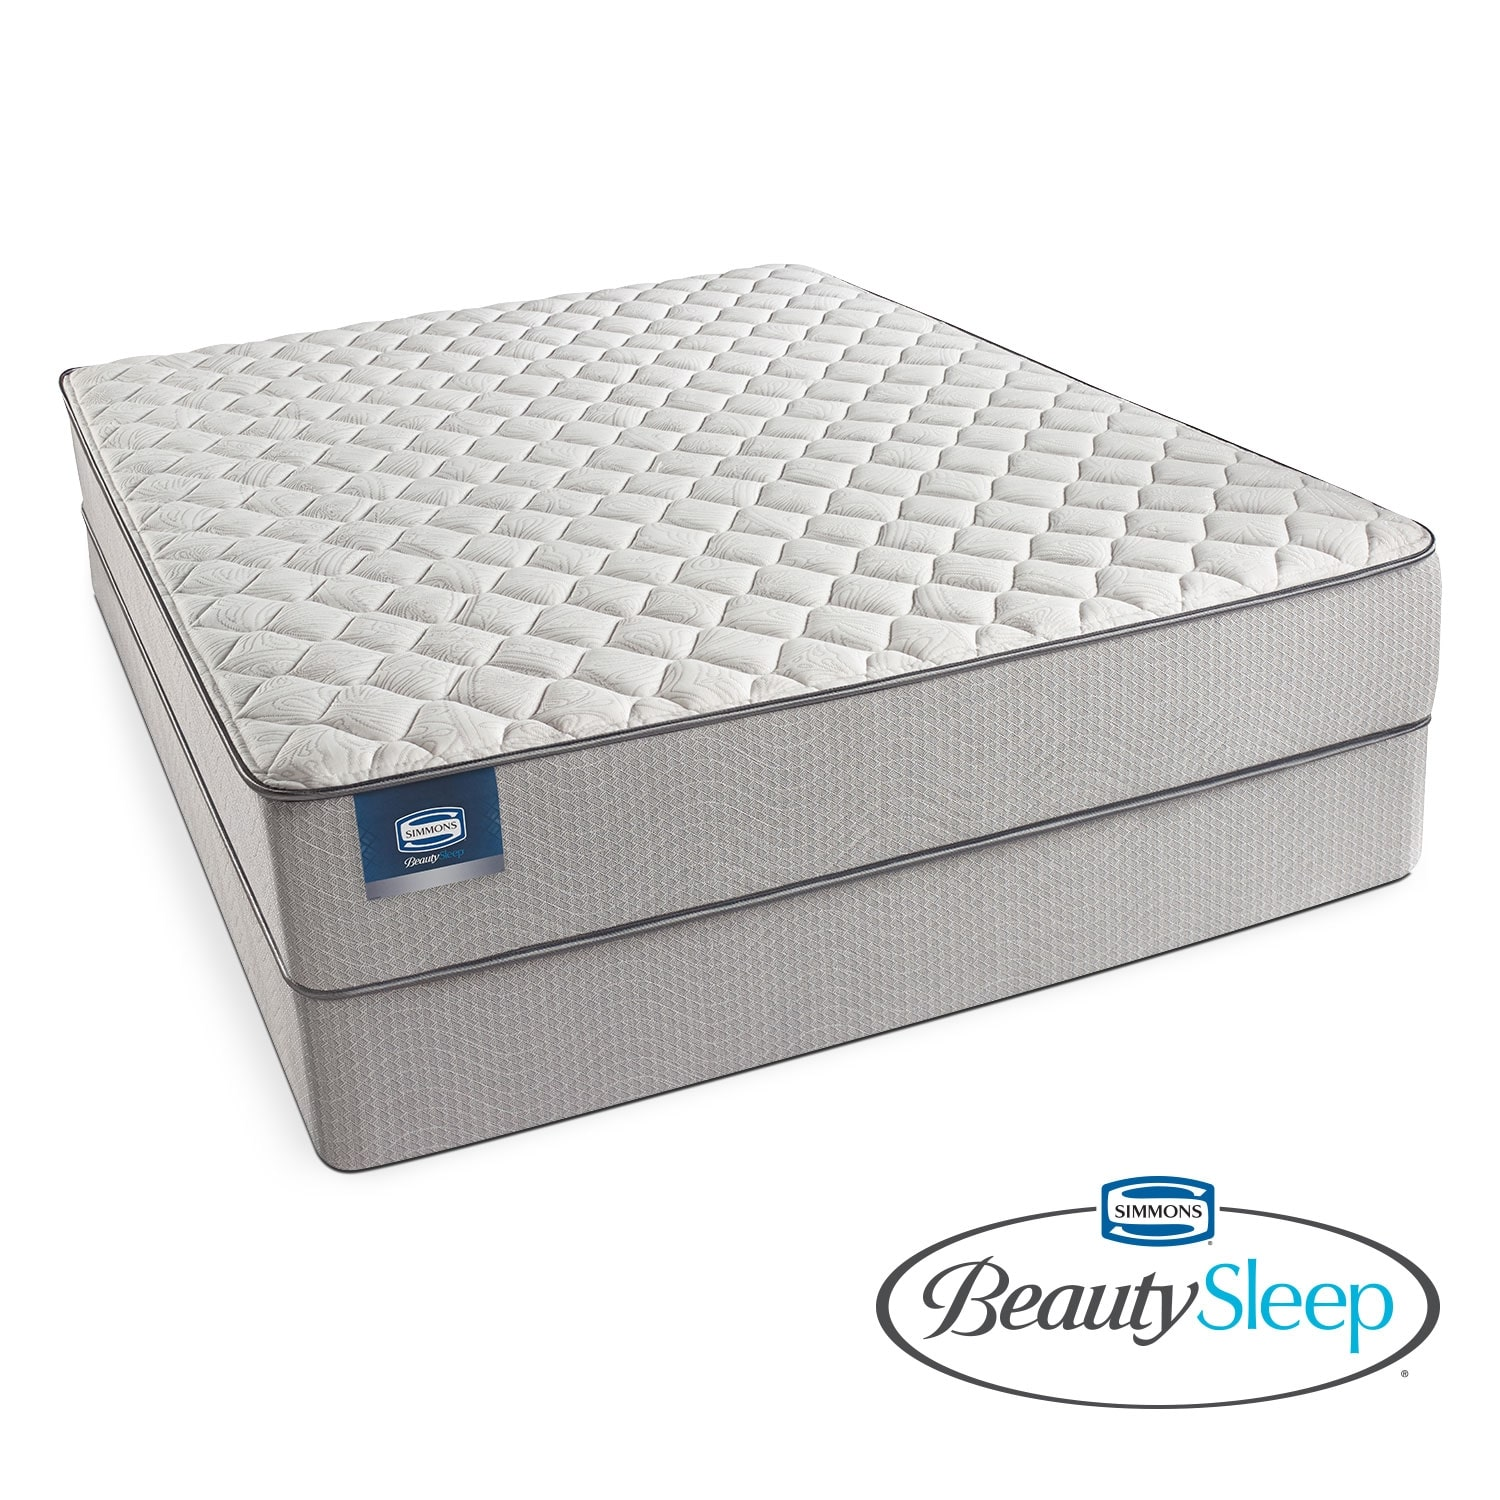 Mattresses and Bedding - Canal St. Firm Queen Mattress/Low Profile Foundation Set